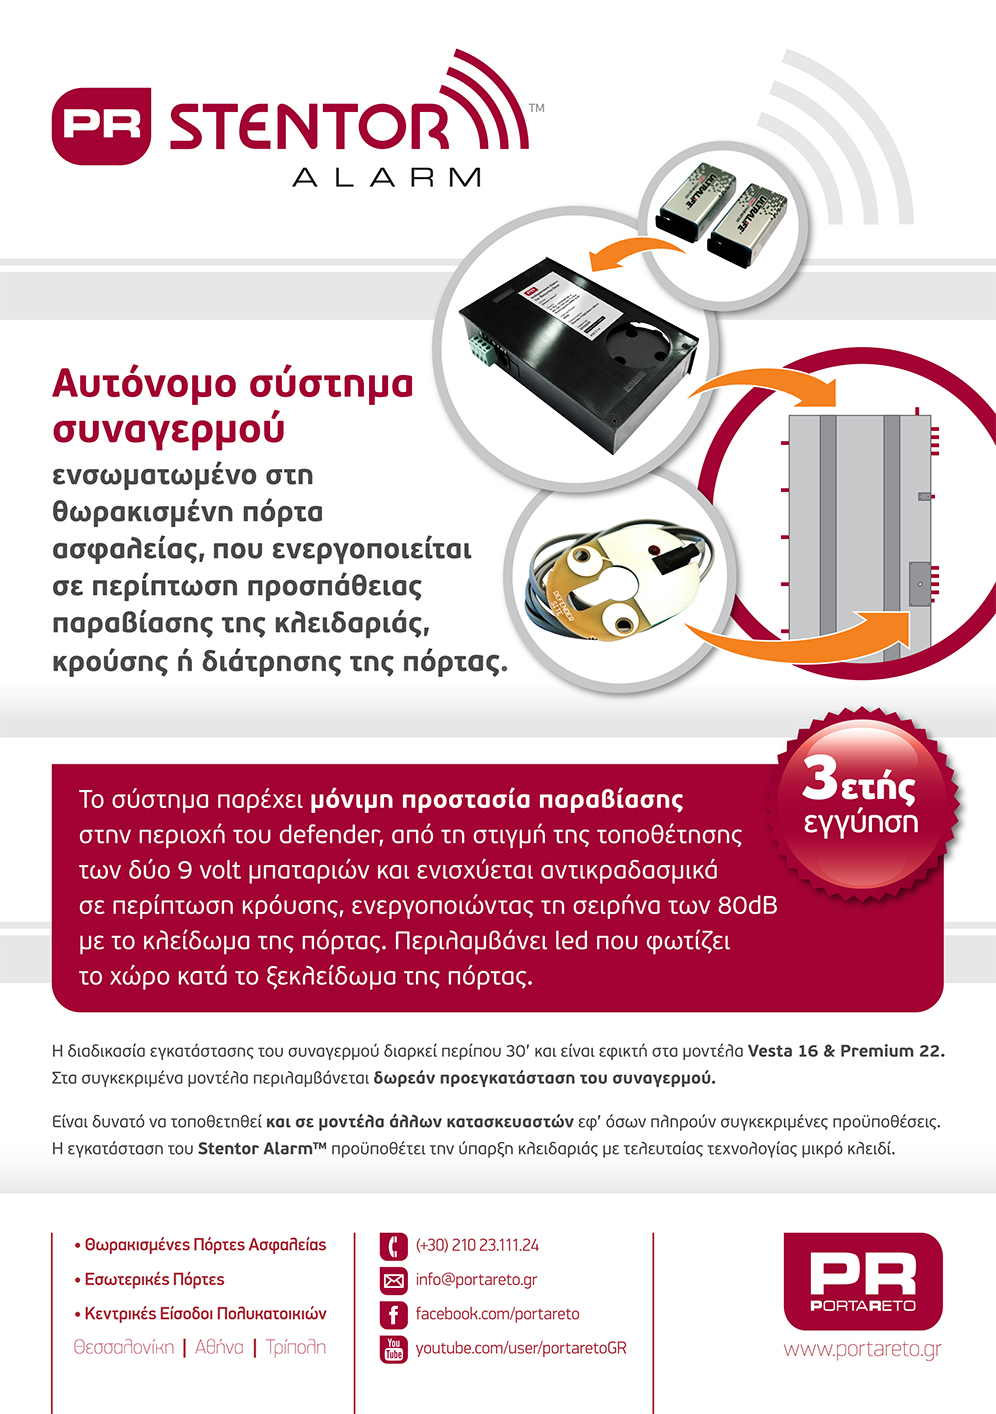 Stentor alarm leaflet 04 OUT